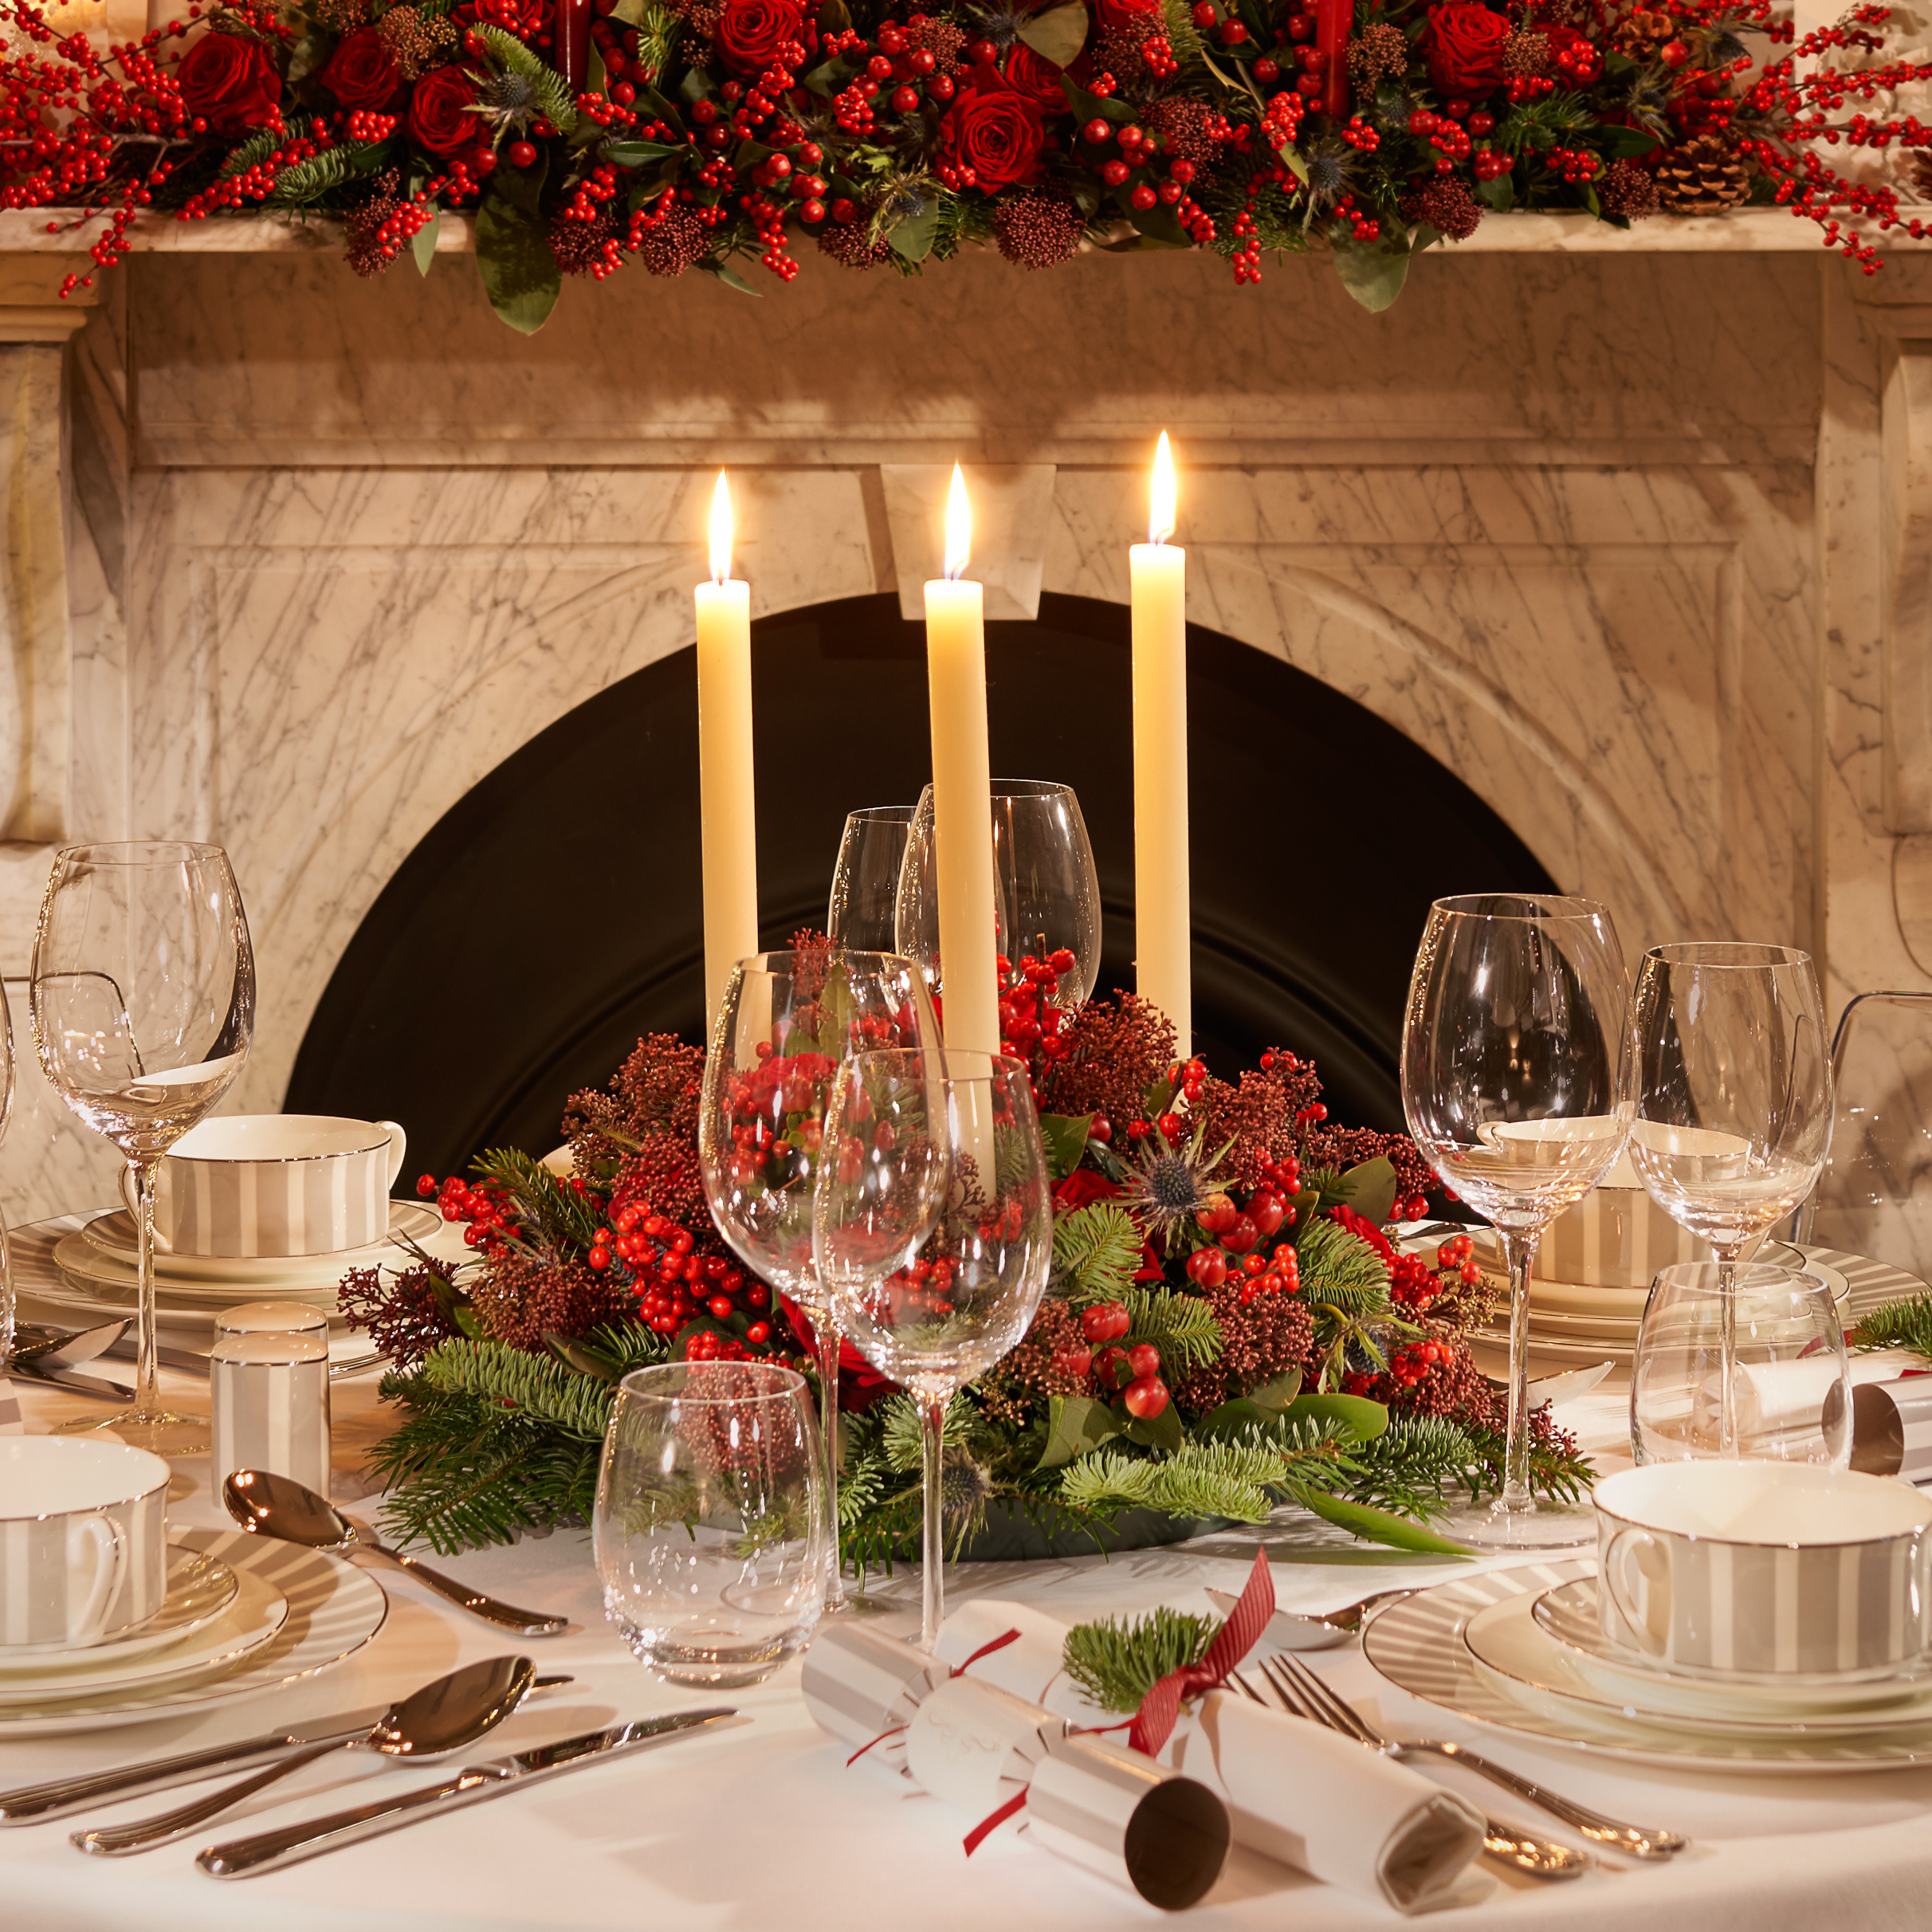 Dining Table Setting FL Close Up 2400px.jpg